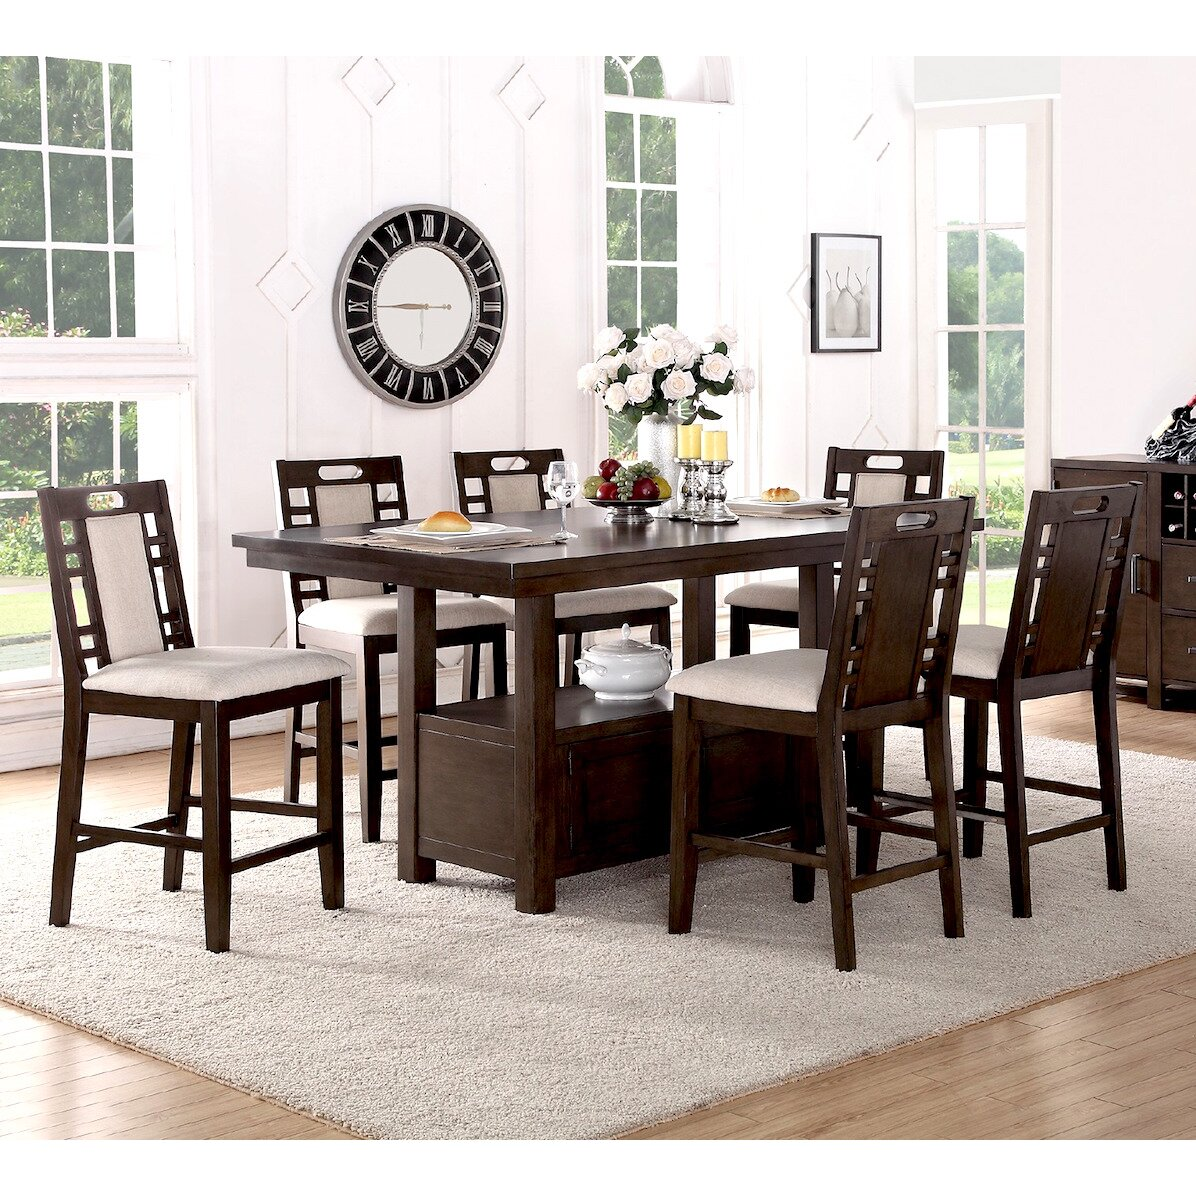 7 Piece Counter Height Dining Room Sets: Infini Furnishings Amable 7 Piece Counter Height Dining